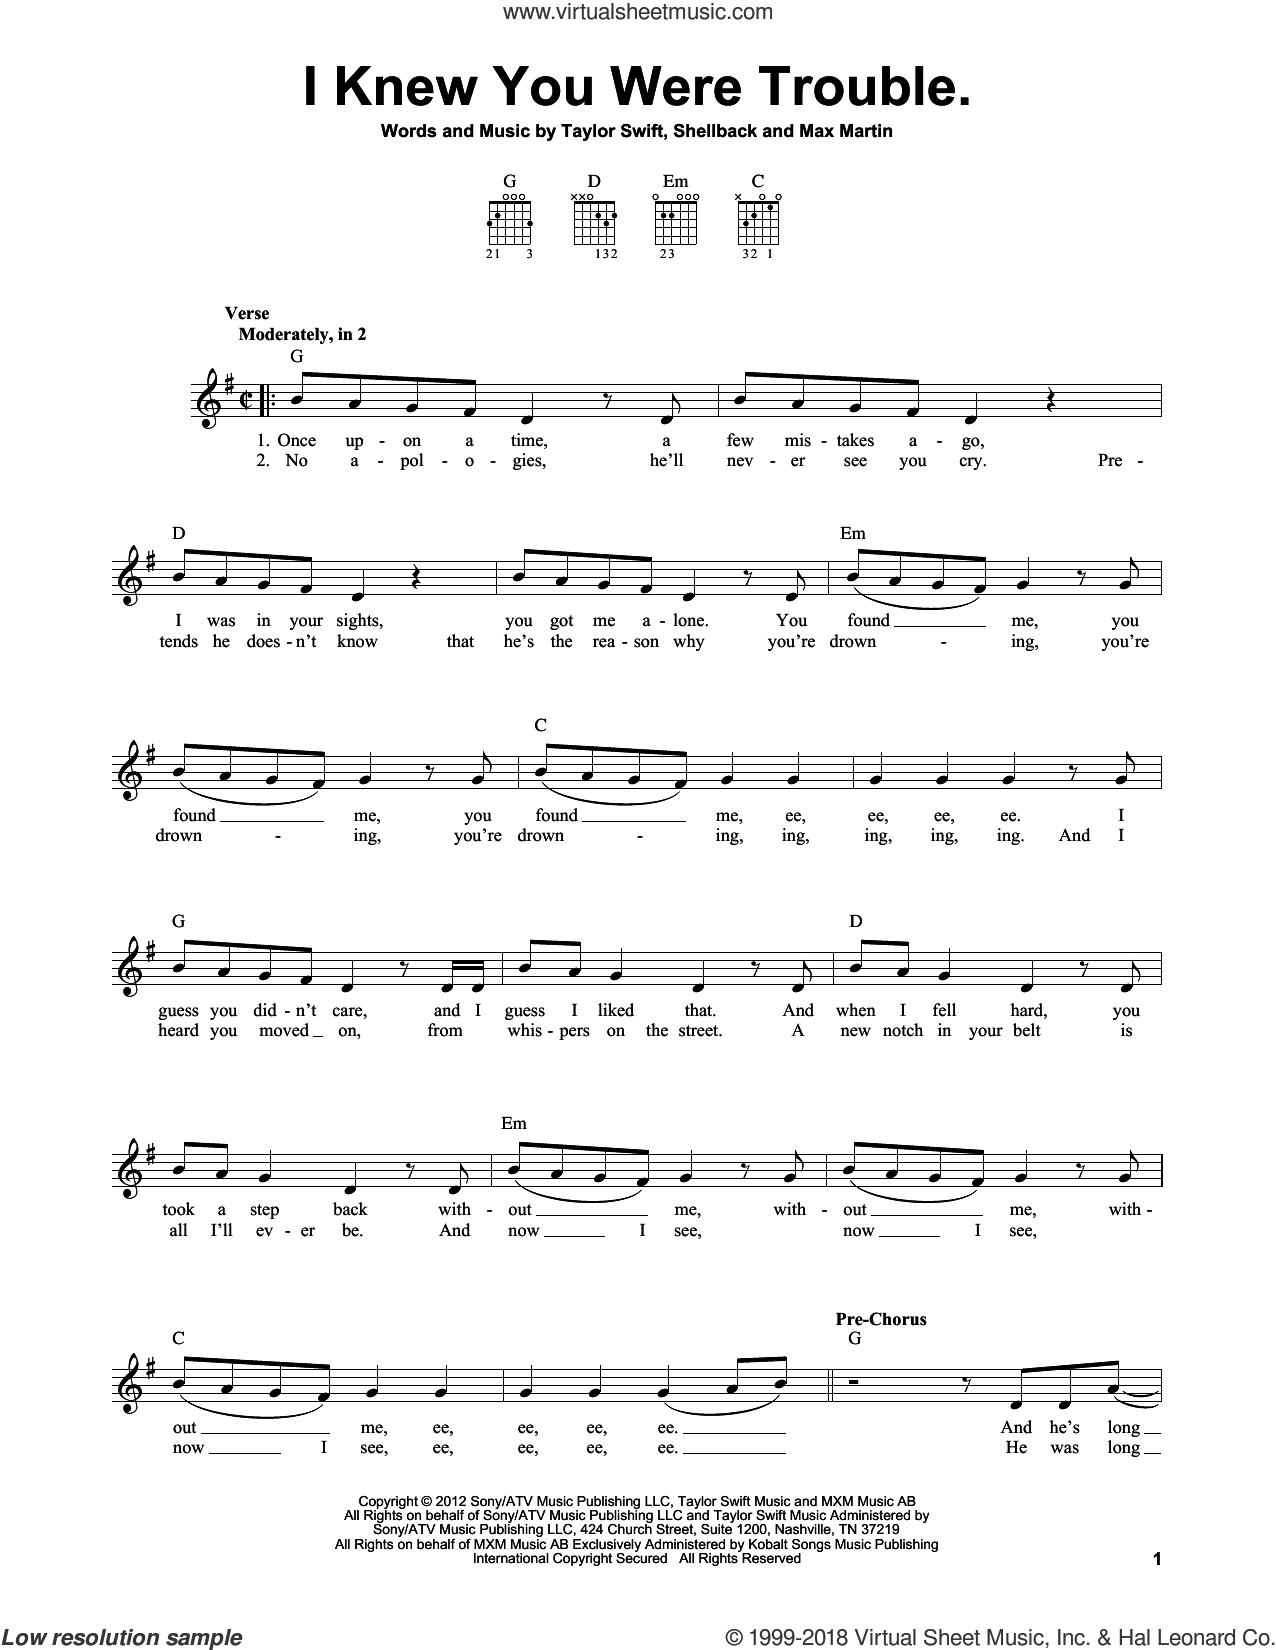 I Knew You Were Trouble sheet music for guitar solo (chords) by Shellback, Max Martin and Taylor Swift. Score Image Preview.